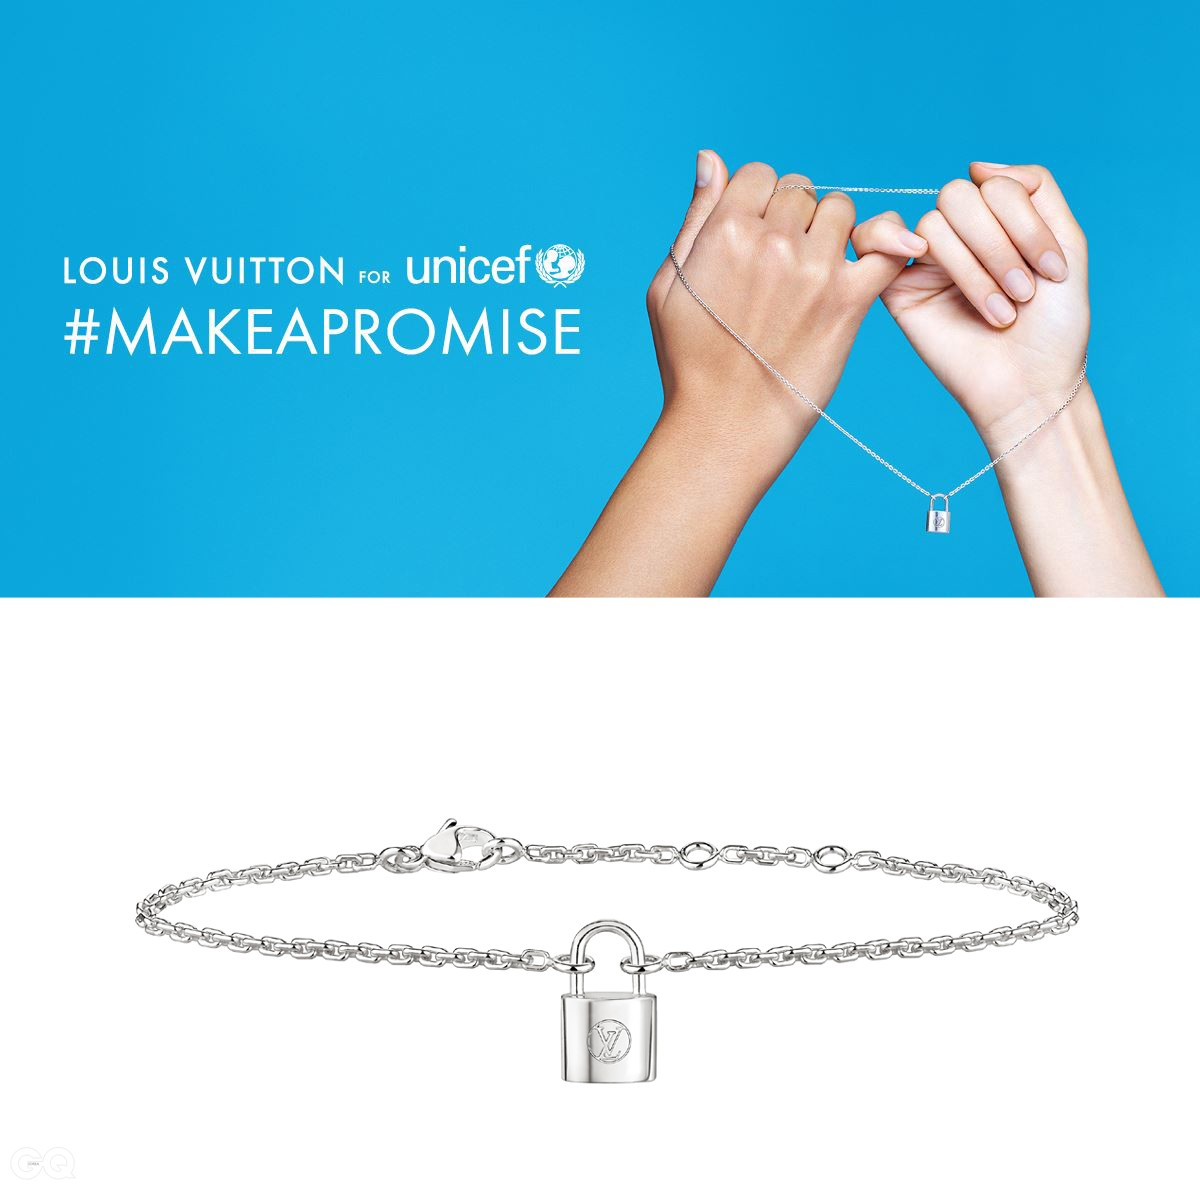 [LV for UNICEF] #MAKEAPROMISE 새끼손가락 약속 제스처_Facebook copy